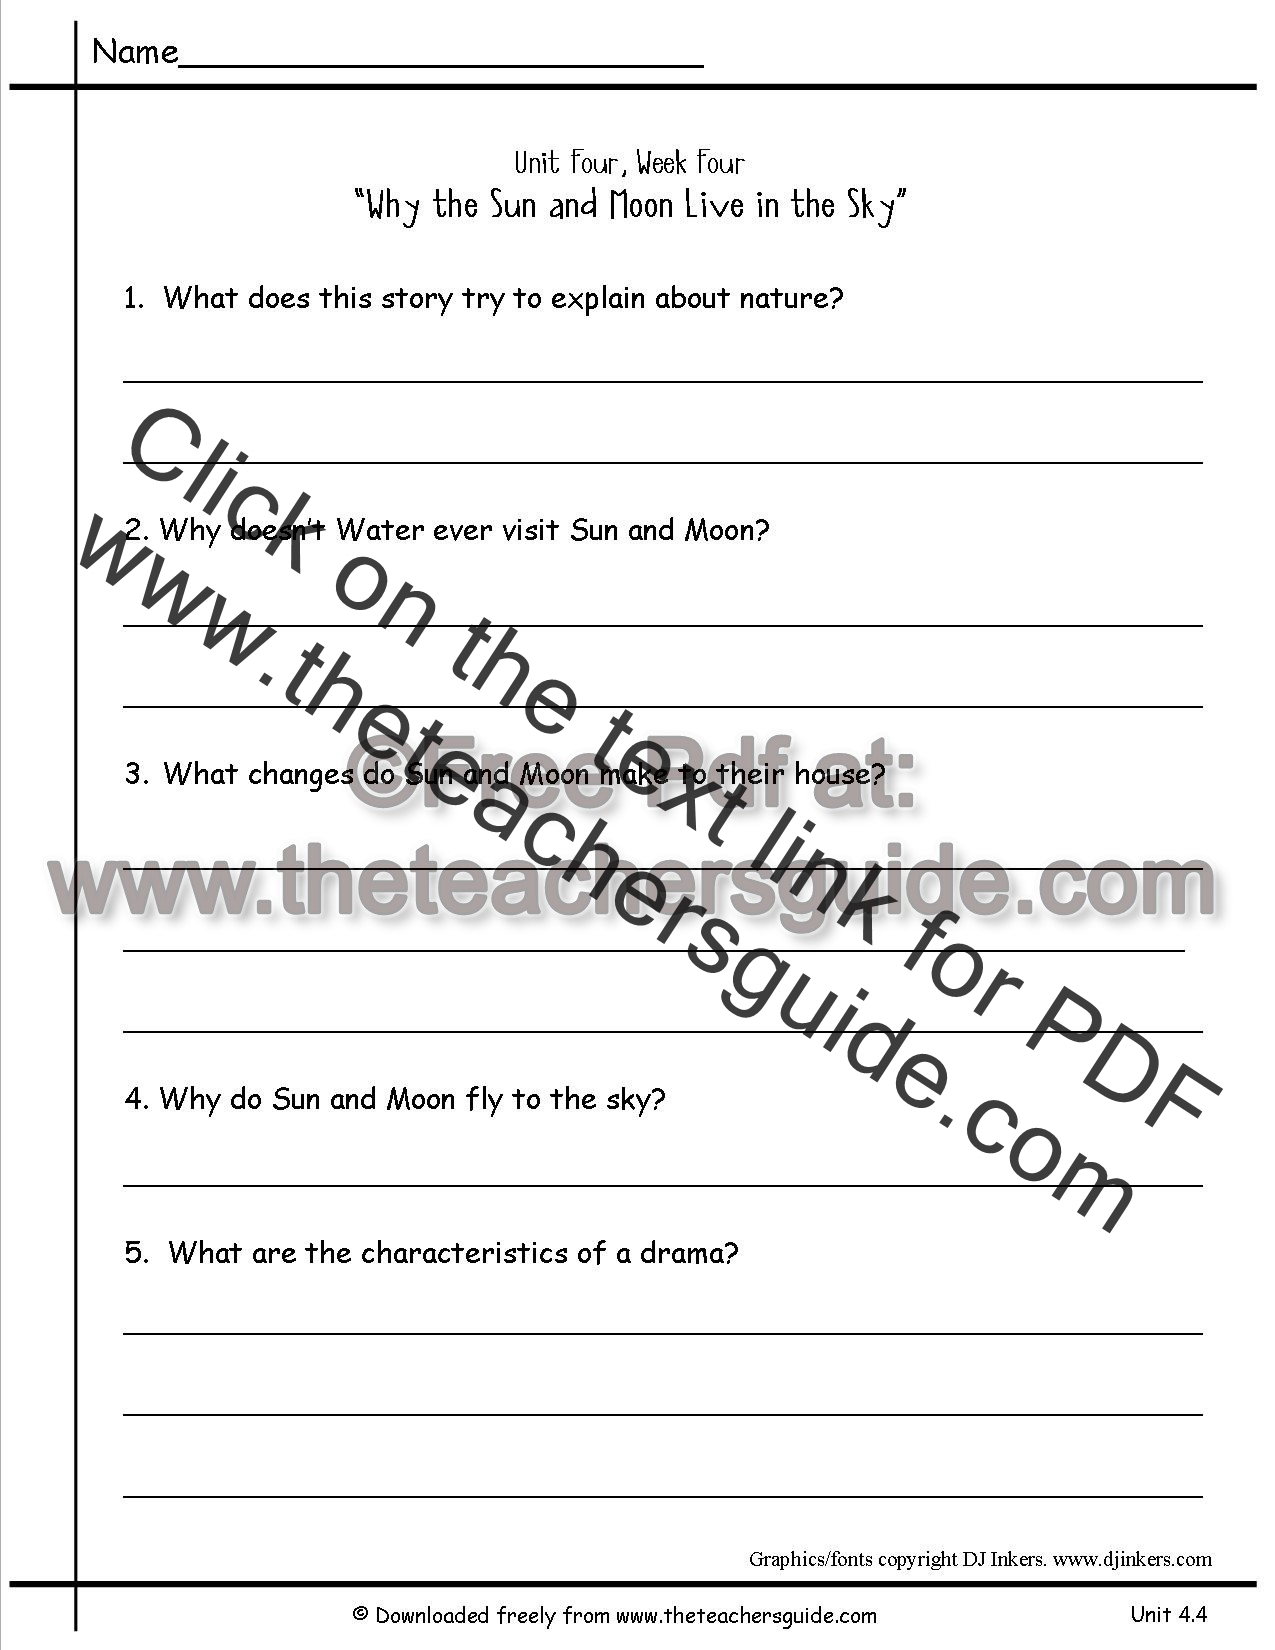 Free Worksheets letter matching worksheets : Wonders Second Grade Unit Four Week Four Printouts